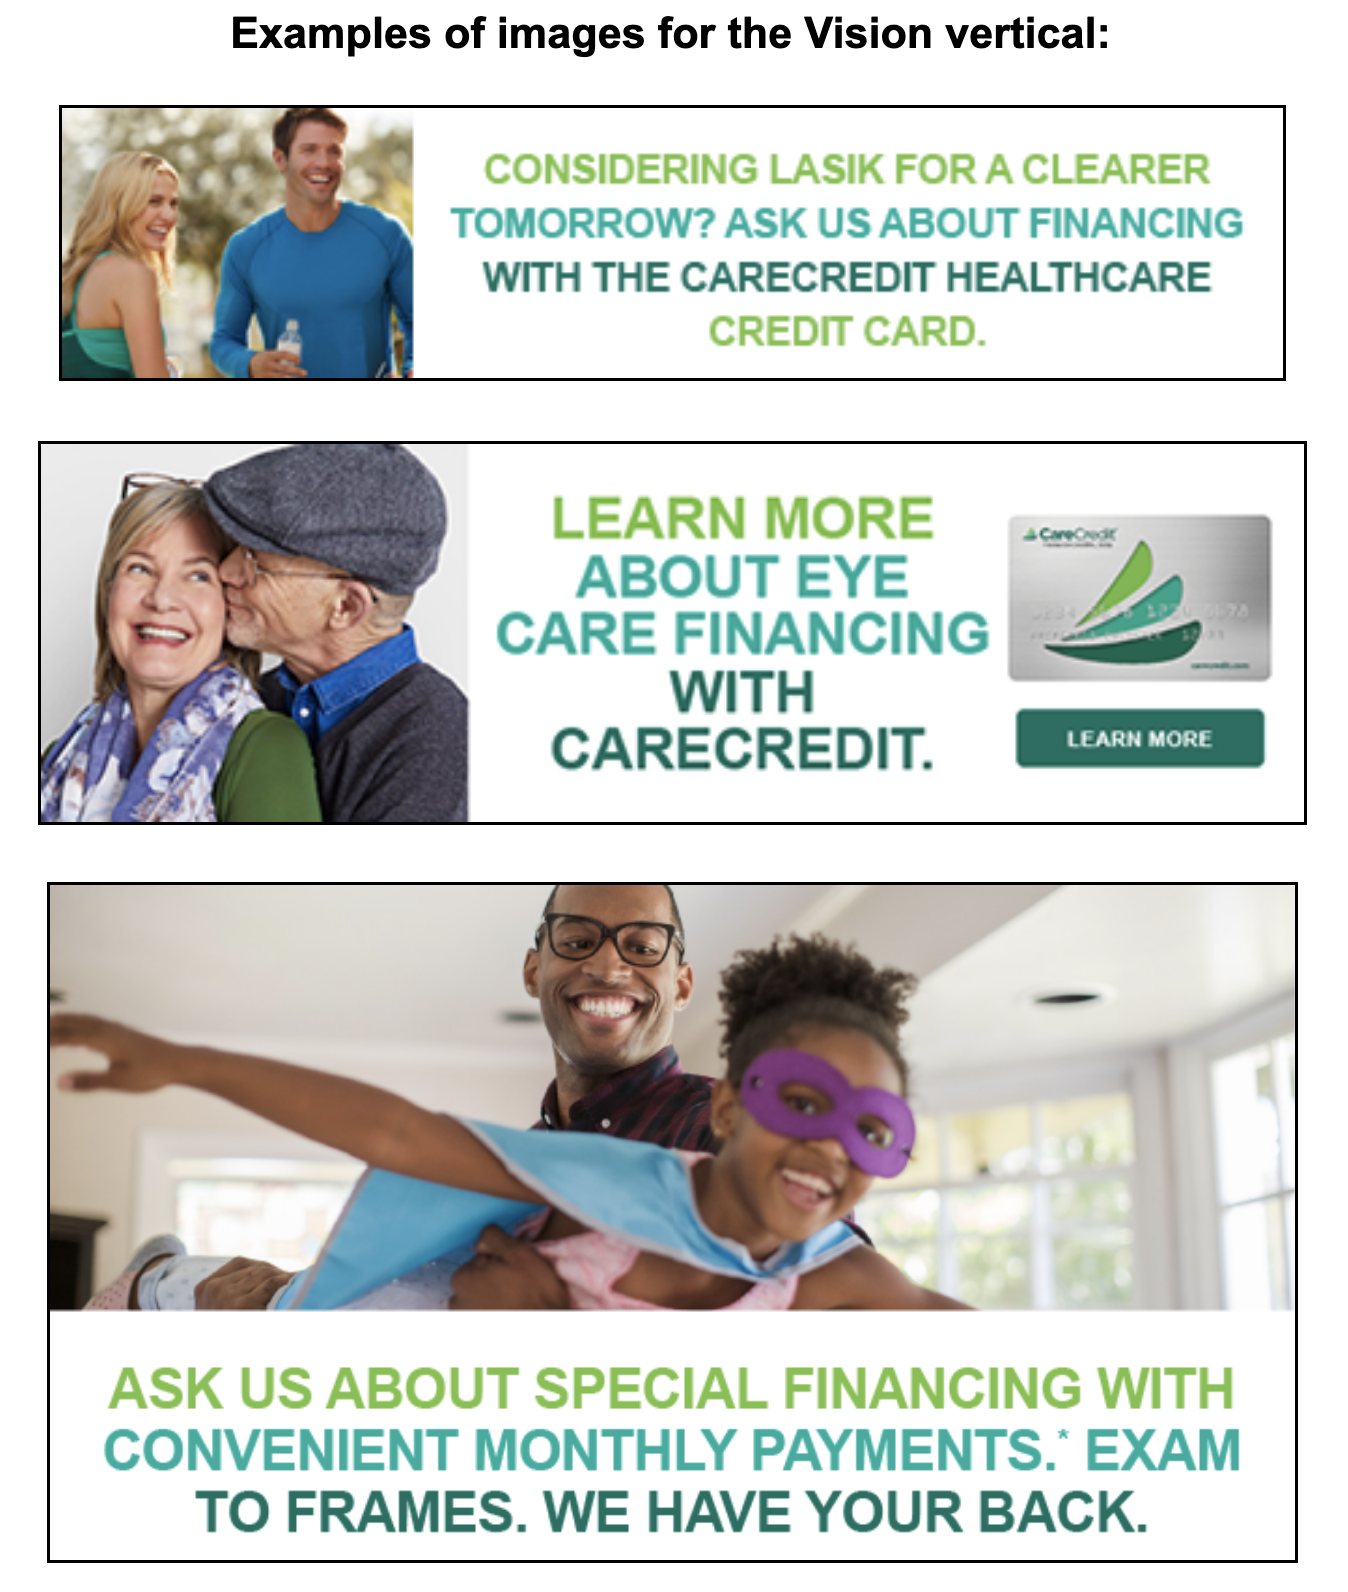 CareCredit example images